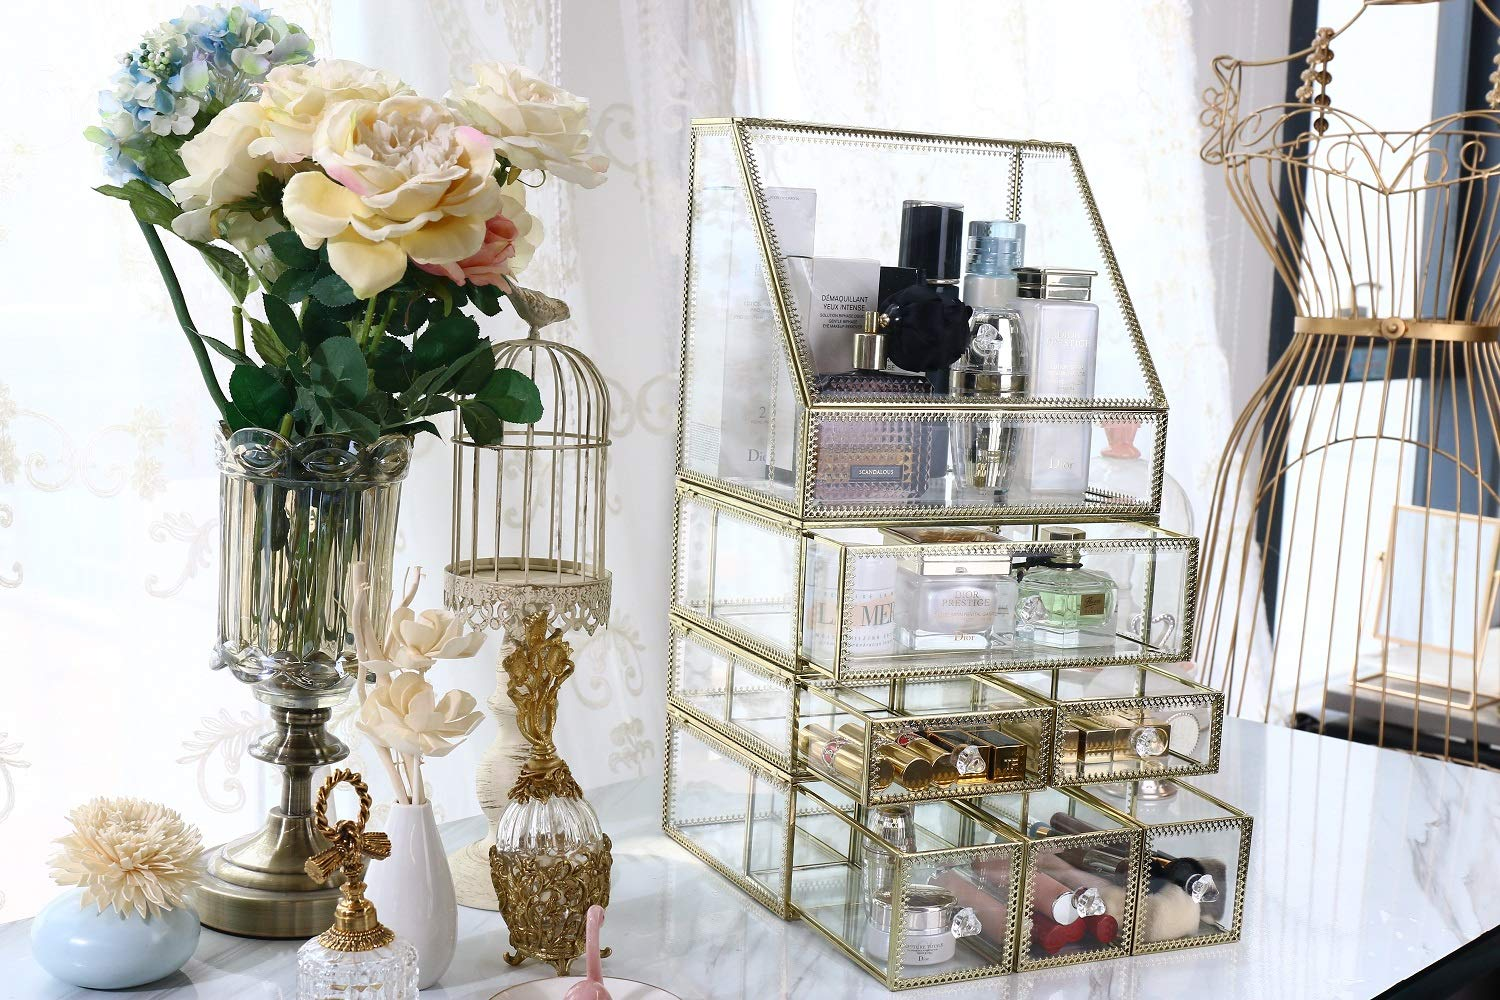 minopigo Antique Spacious Mirror Glass Drawers Set/Brass Metal Cosmetic Makeup Storage/Stunning Jewelry Cube Organizer. It Consists of 4Separate Organizers with Lid-Display Dustproof (1DRAWER) DesignD